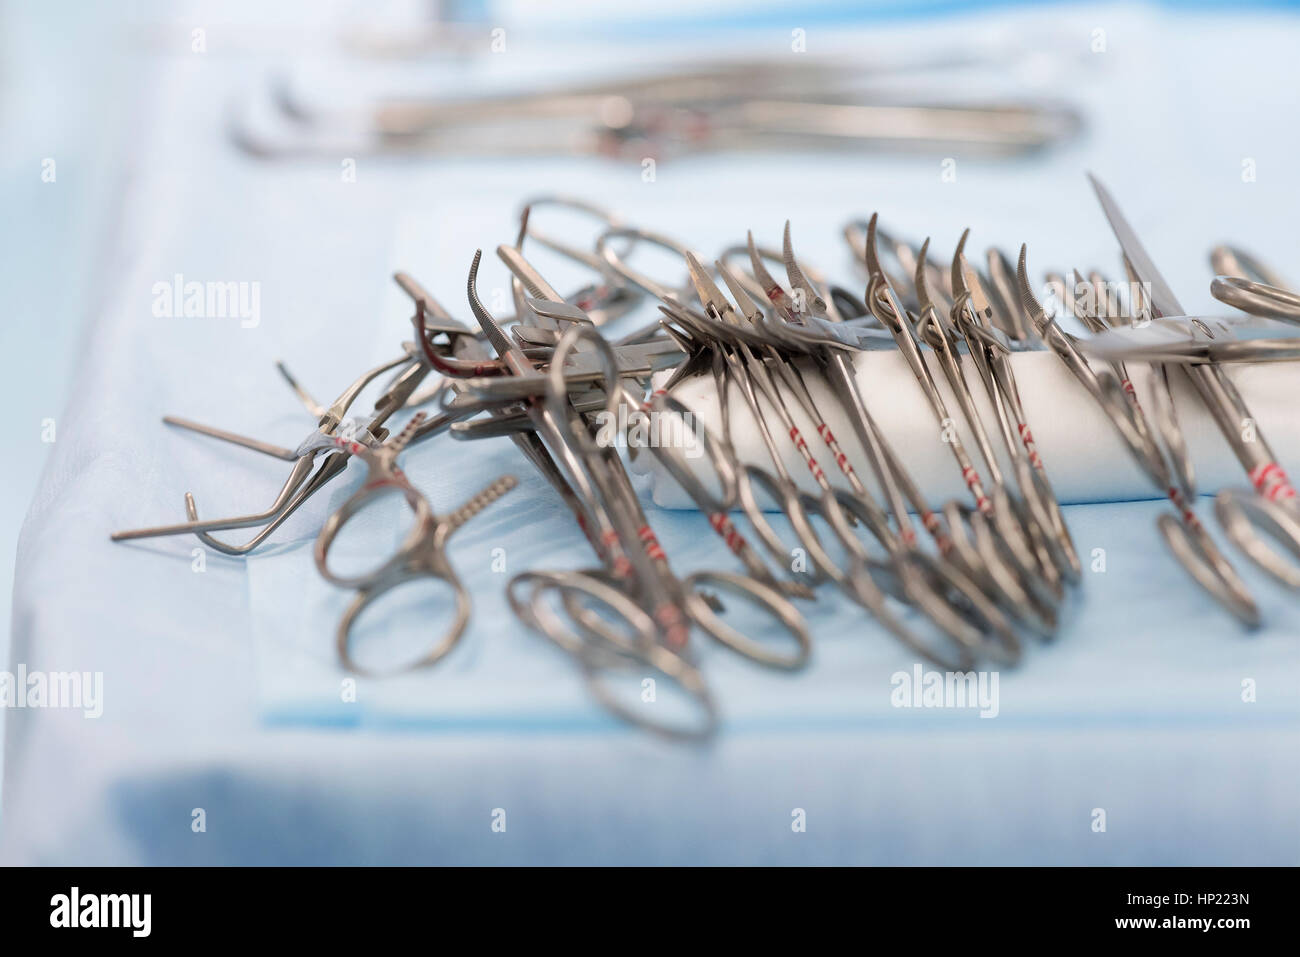 sterile surgical instruments on during the operation table - Stock Image